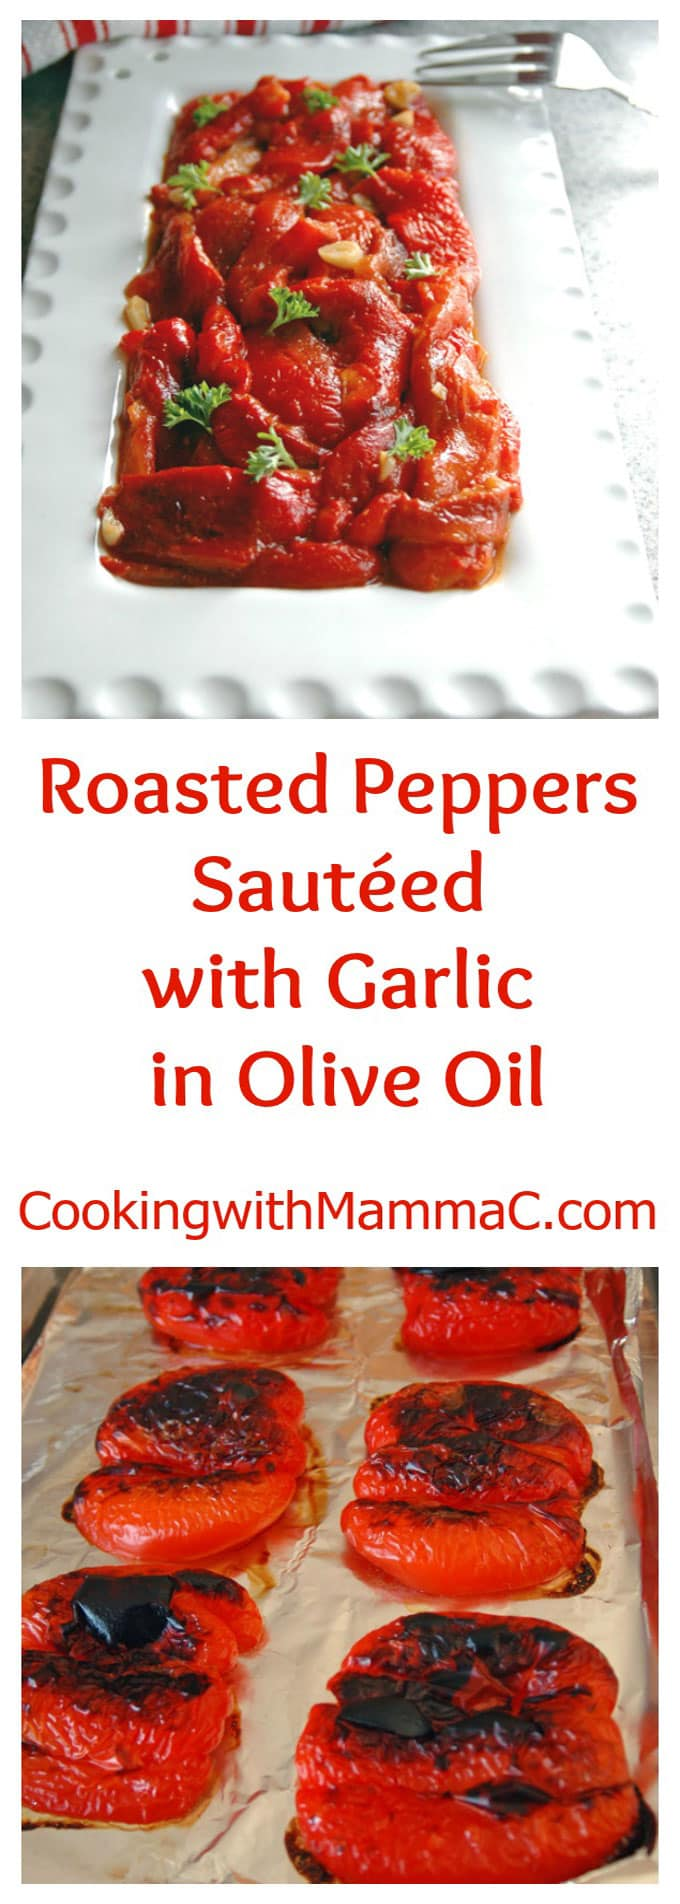 Roasted Peppers Sautéed with Garlic in Olive Oil - Vegan, gluten free, and the most flavorful bell peppers you'll ever have!